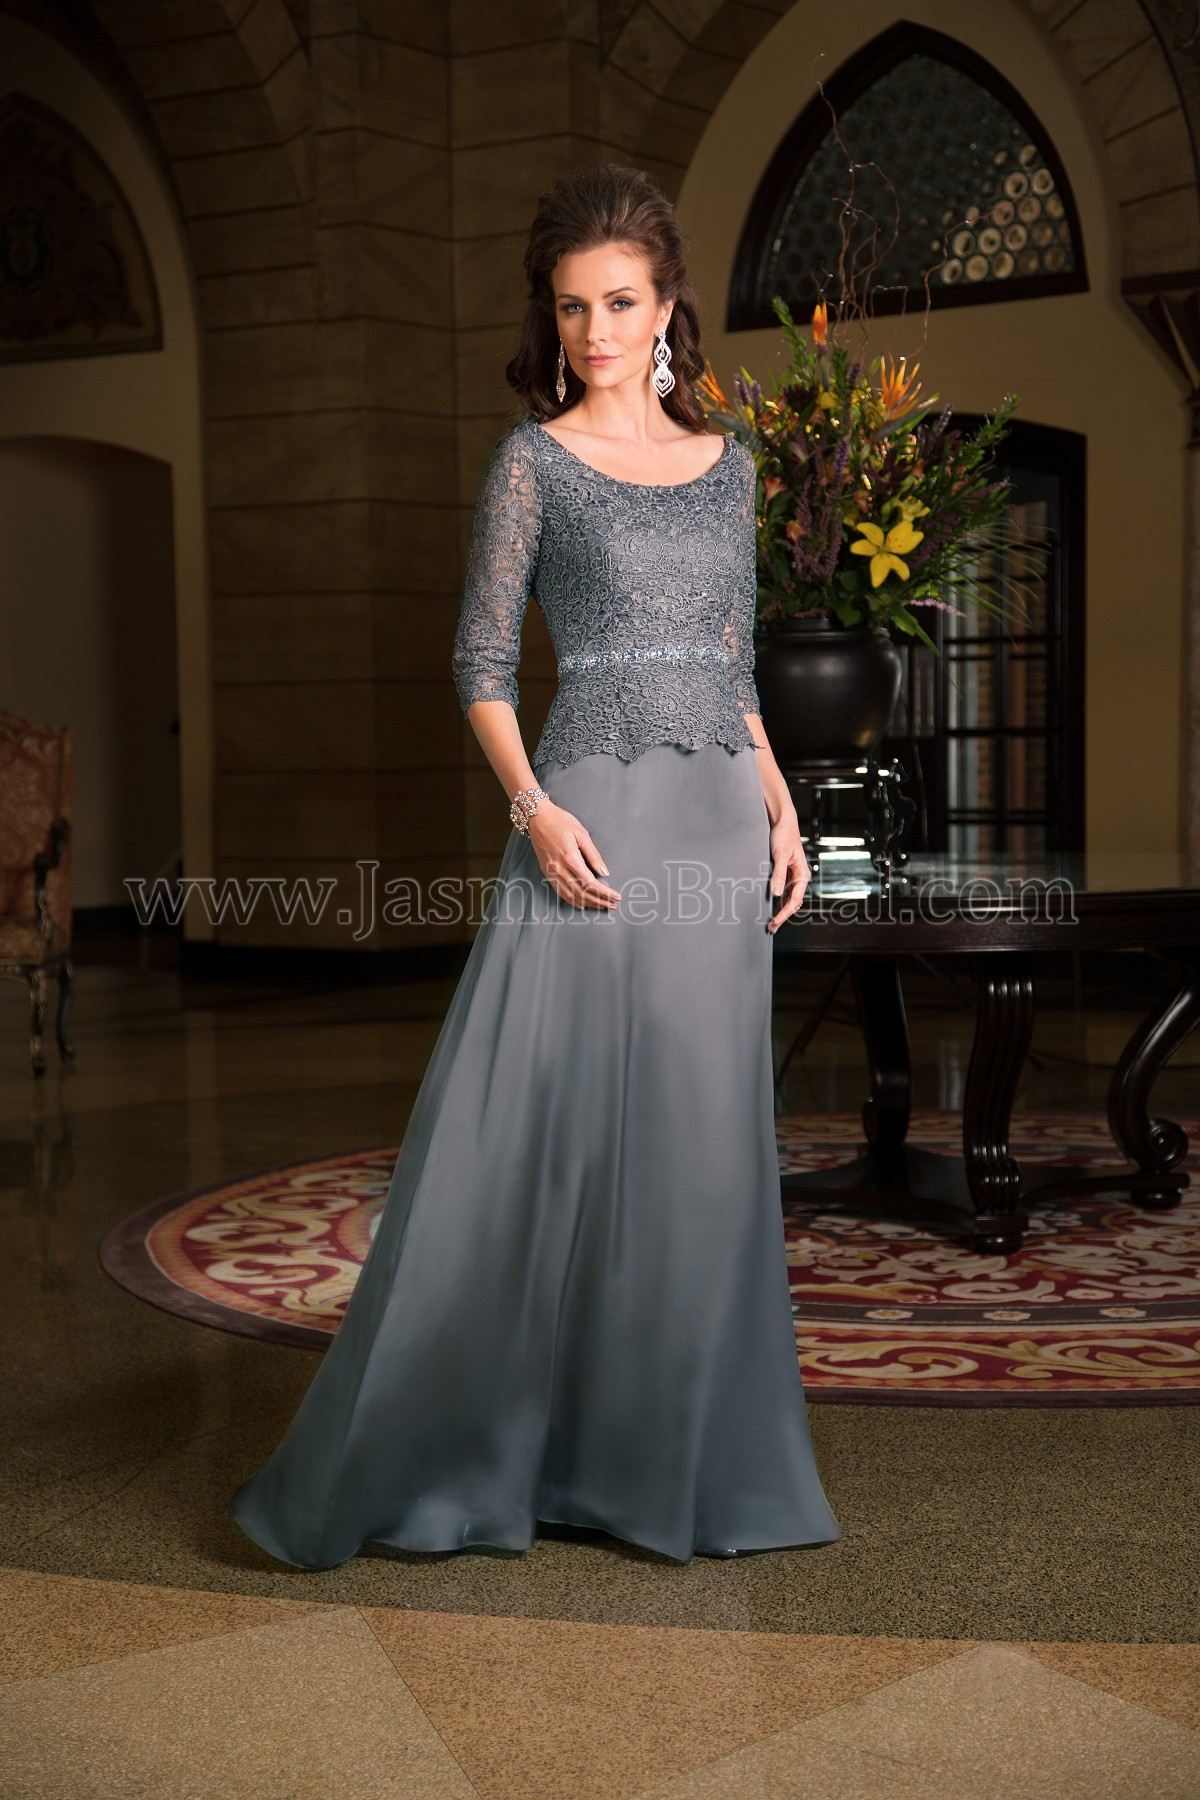 K168067 Long Bateau Neckline Lace Amber Satin Chiffon Mob Dress With Sleeves